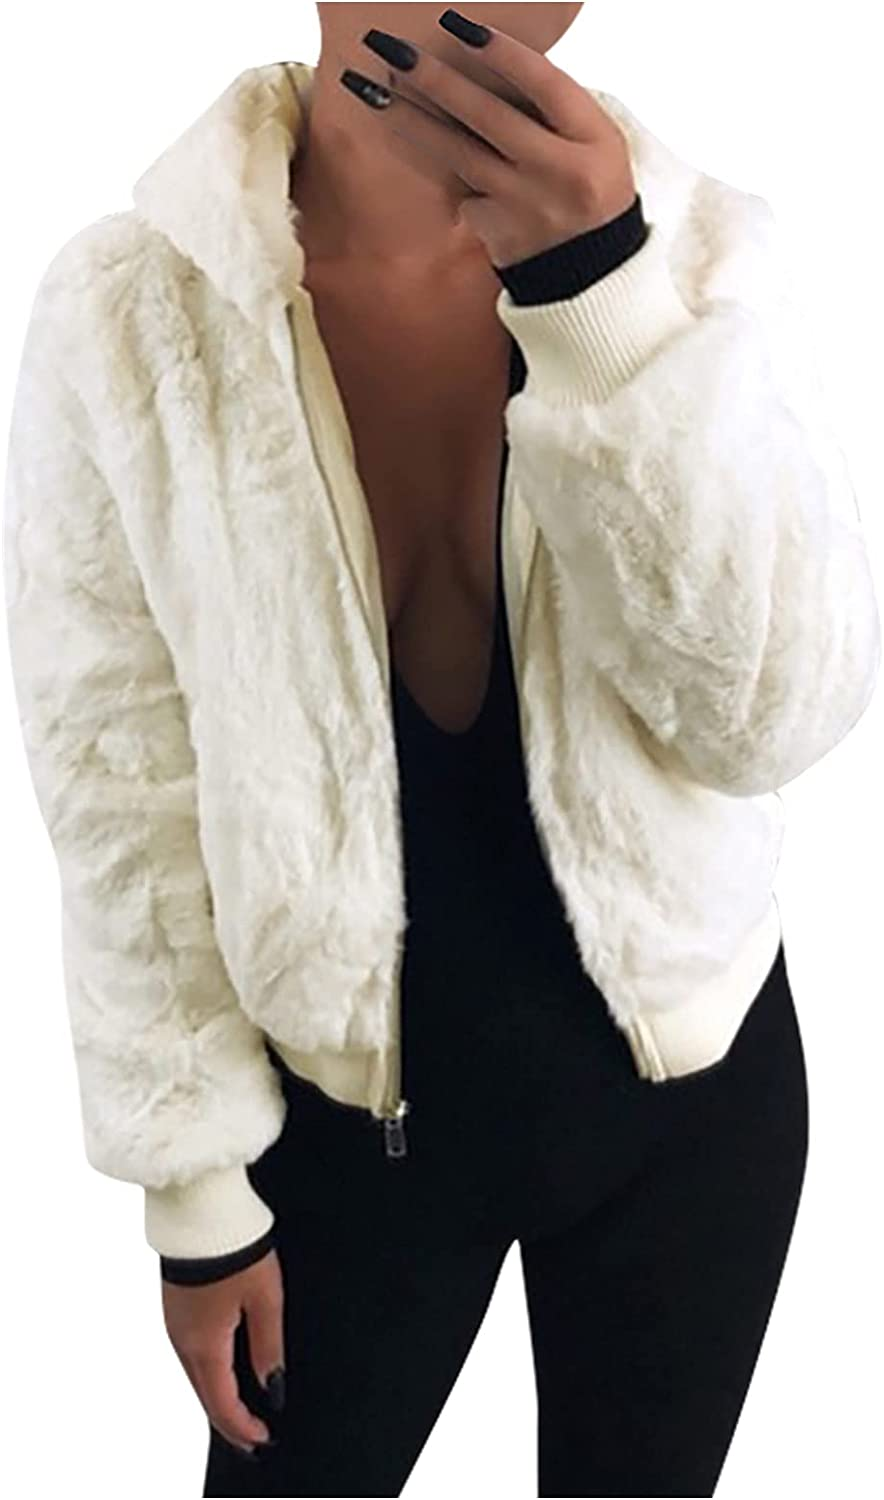 Winter Limited Special Price Coats Daily bargain sale Women Zip up Fleece Hooded Long Crop Sleeve Pockets